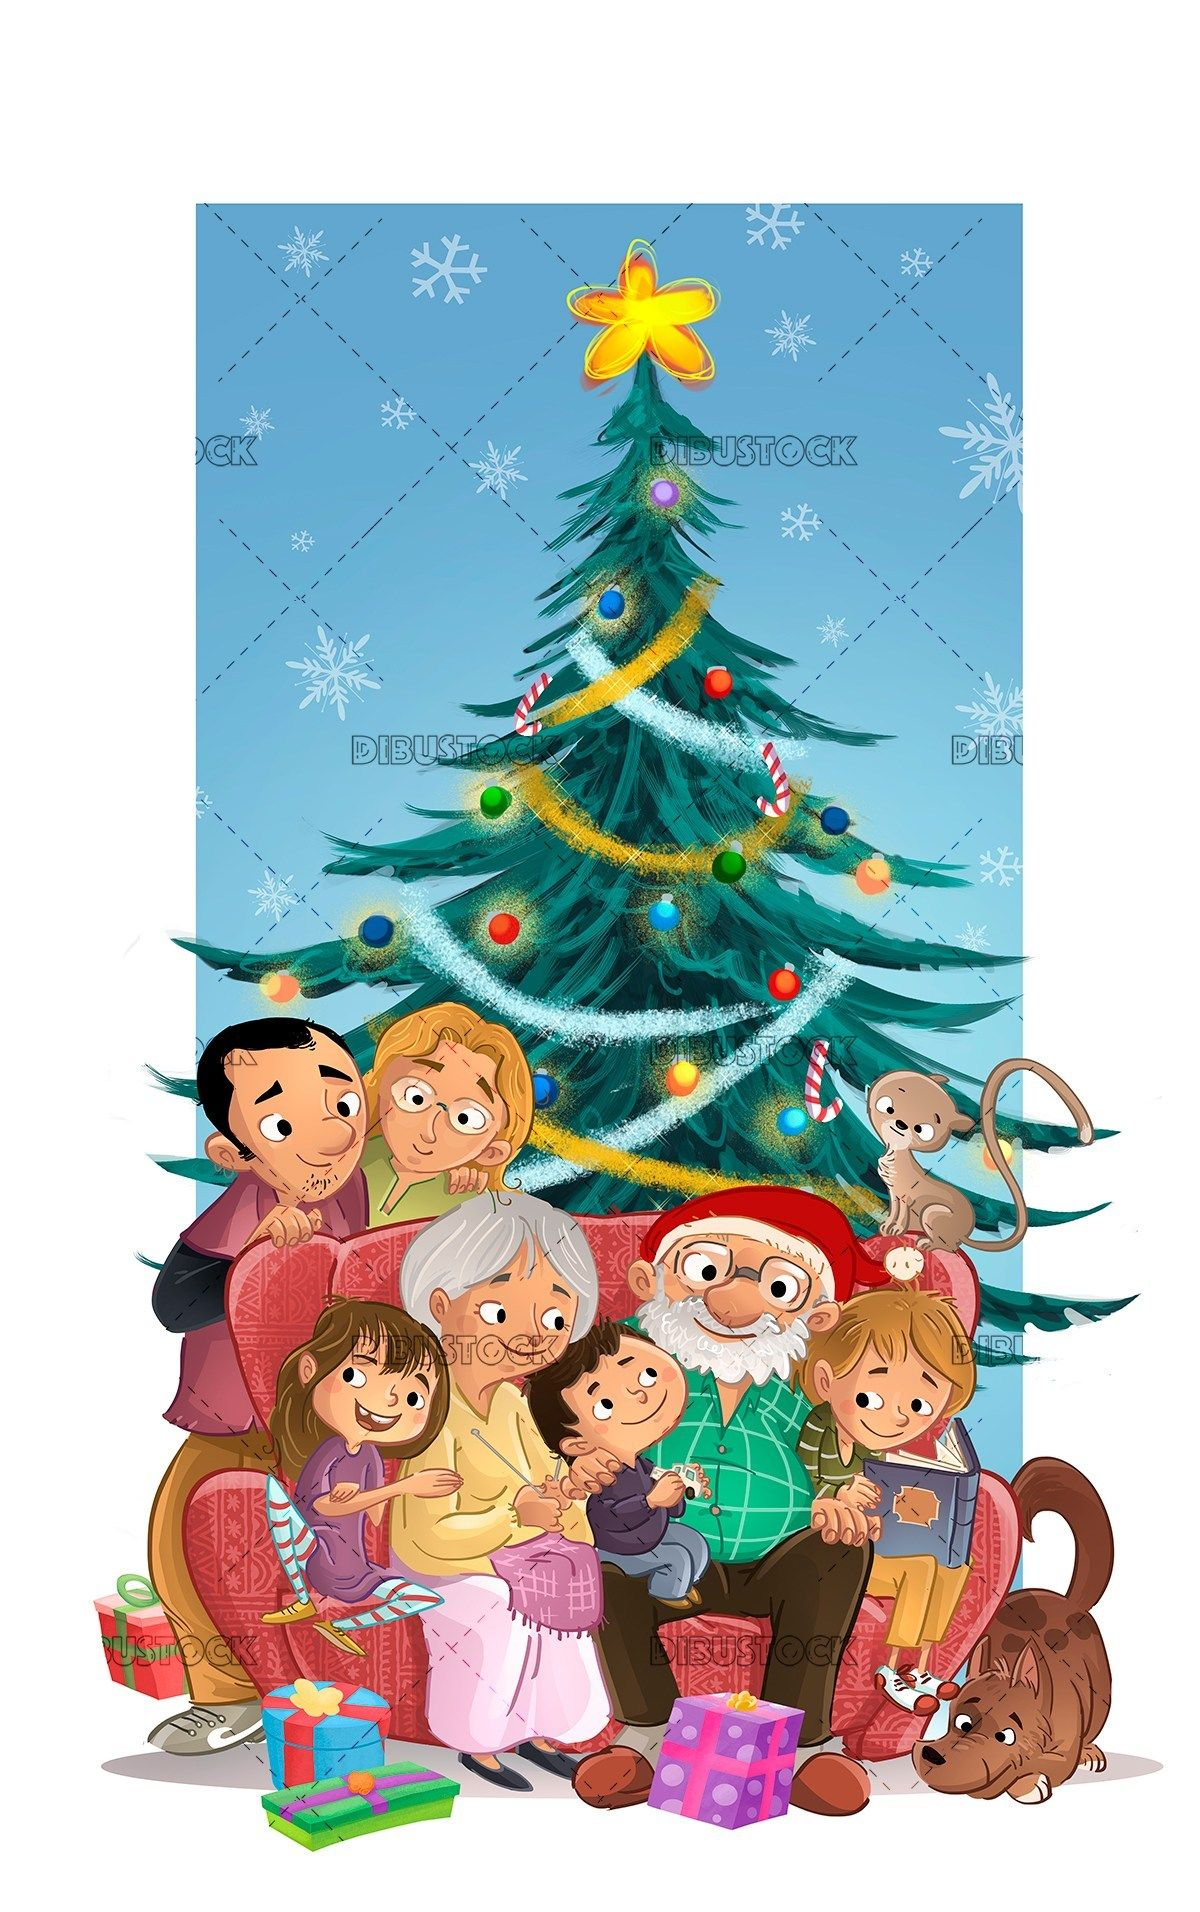 Christmas Celebration Images For Drawing.Baubles Celebration Christmas Drawing Family Father